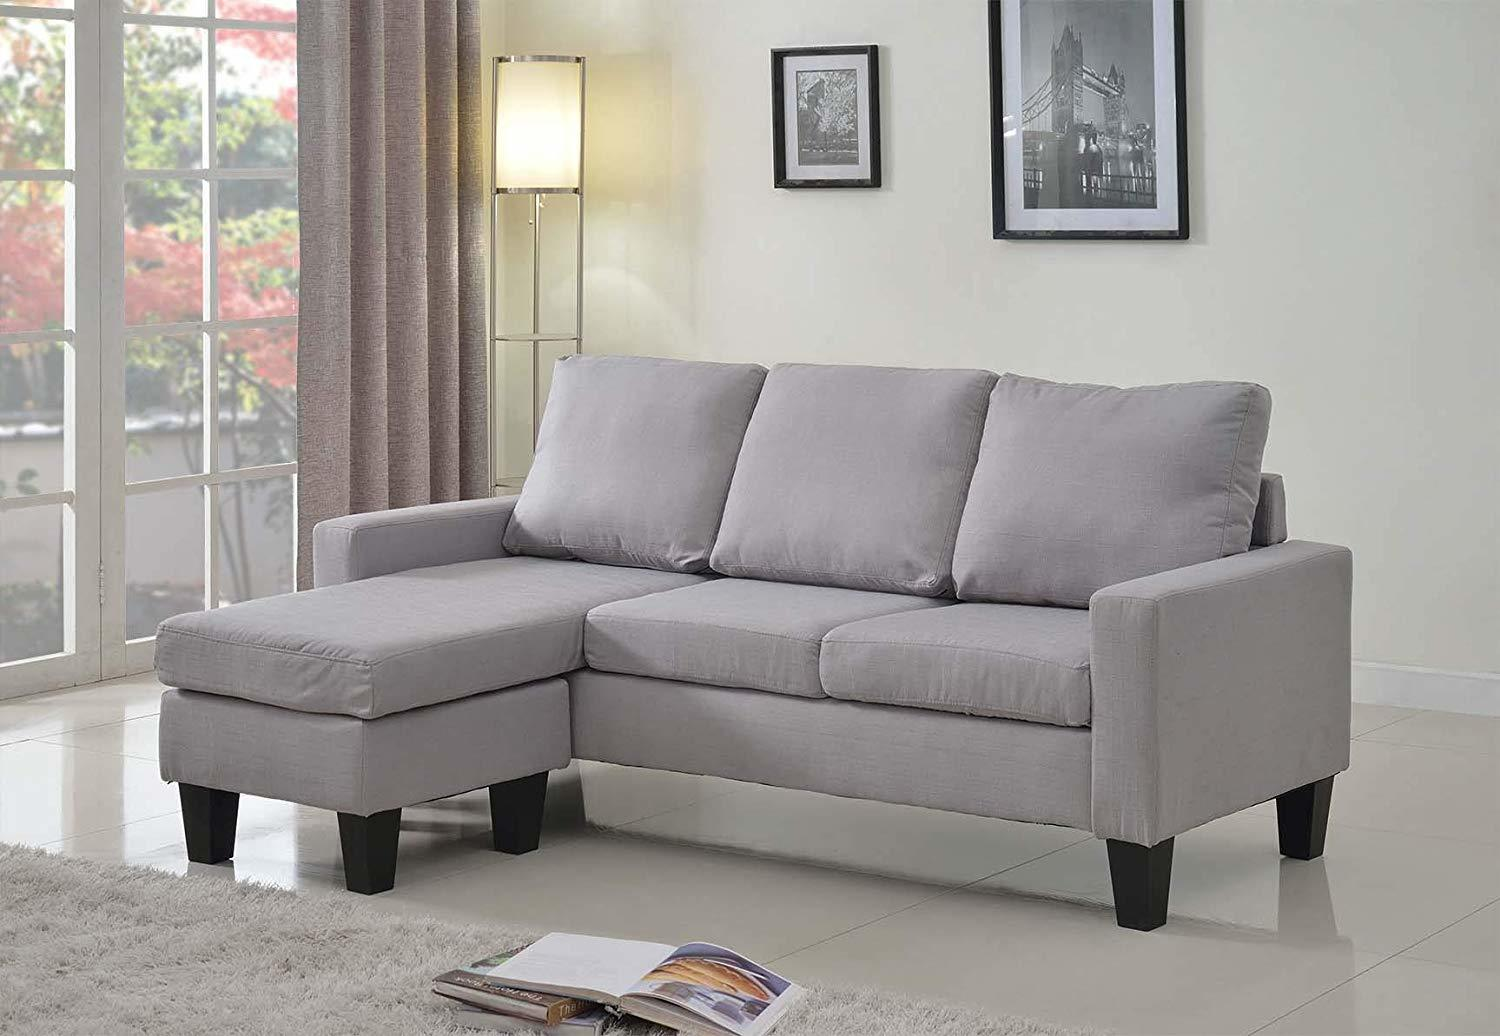 Sectional Sofa and couches